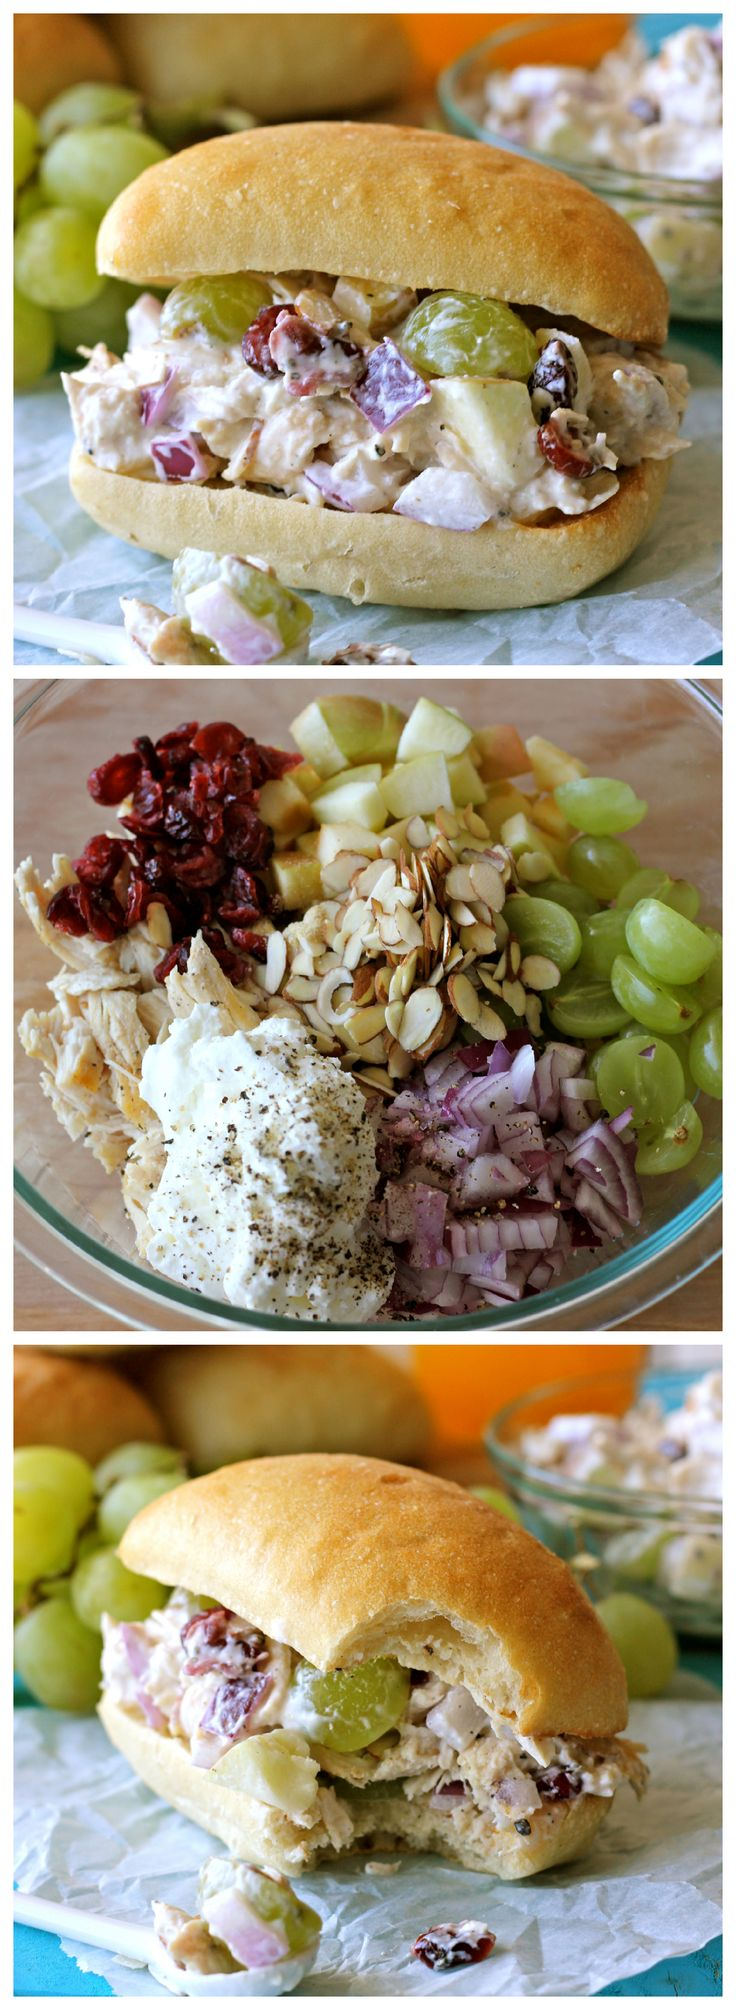 Greek Yogurt Chicken Salad Sandwich - From the plump grapes and fresh apples to the sweet cranberries, this lightened up sandwich wont even taste healthy!